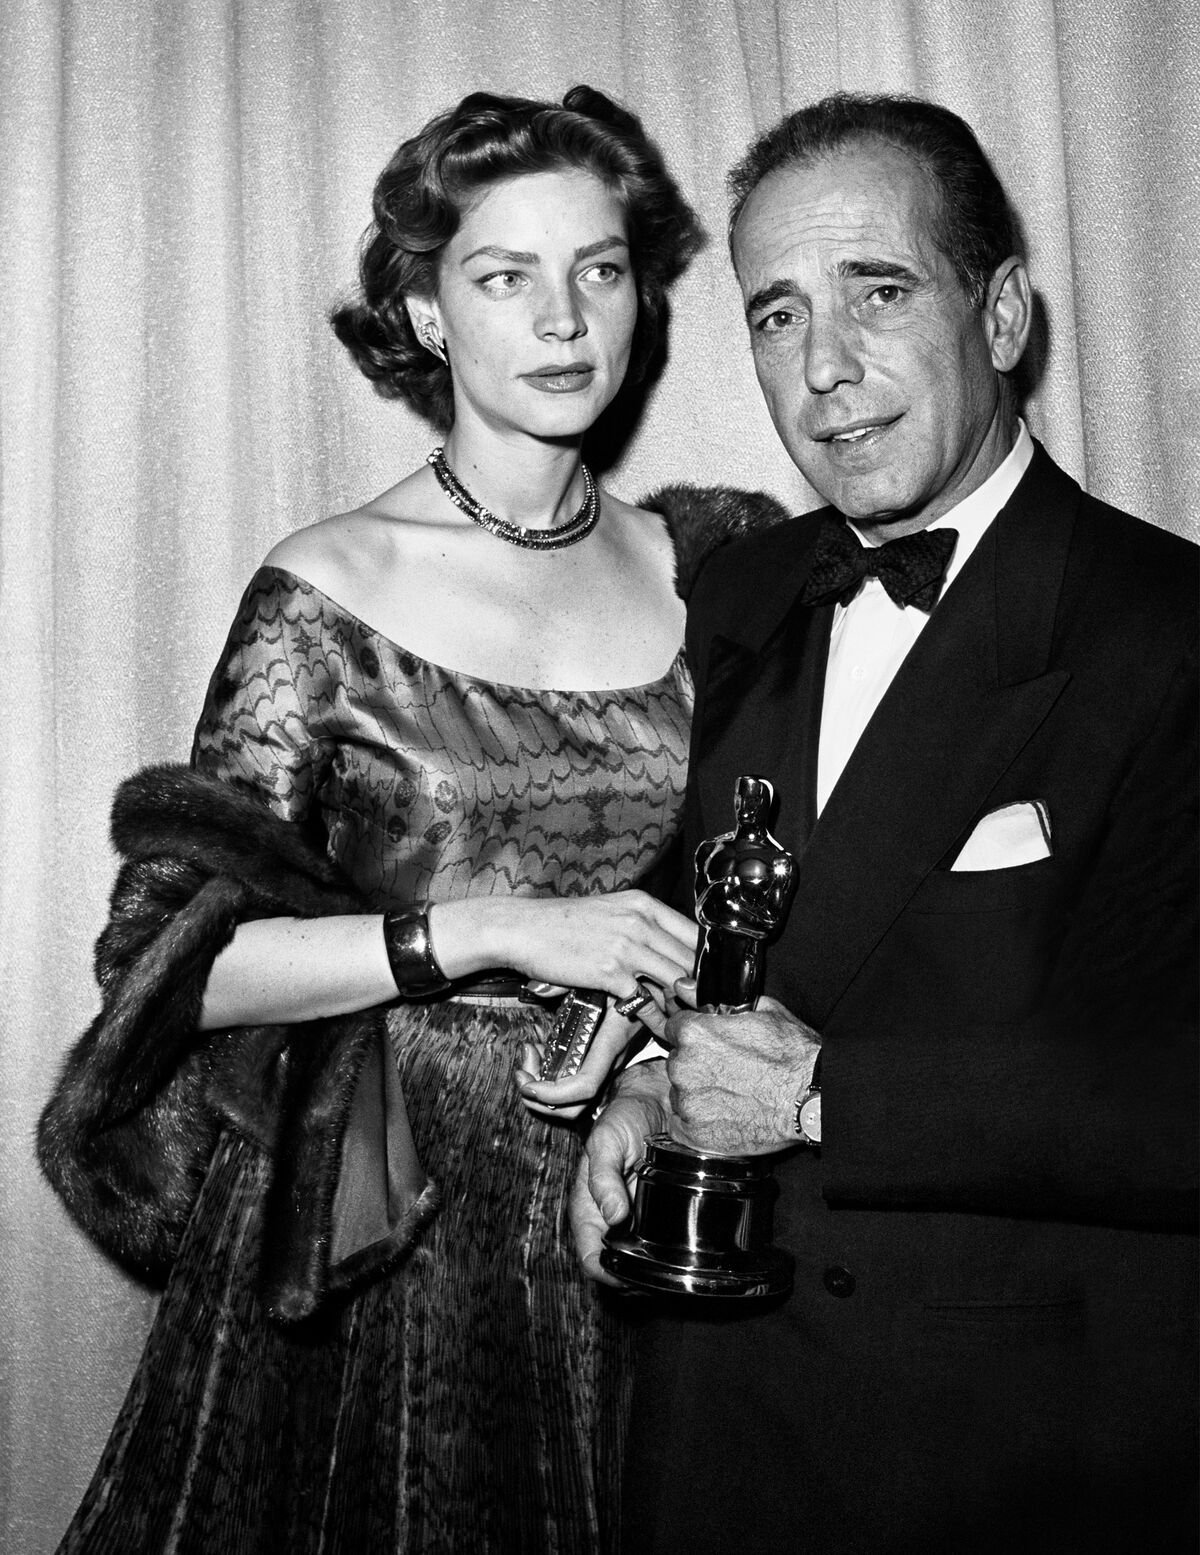 Humphrey Bogart and Lauren Bacall at the Academy Awards ceremony. | Source: Getty Images